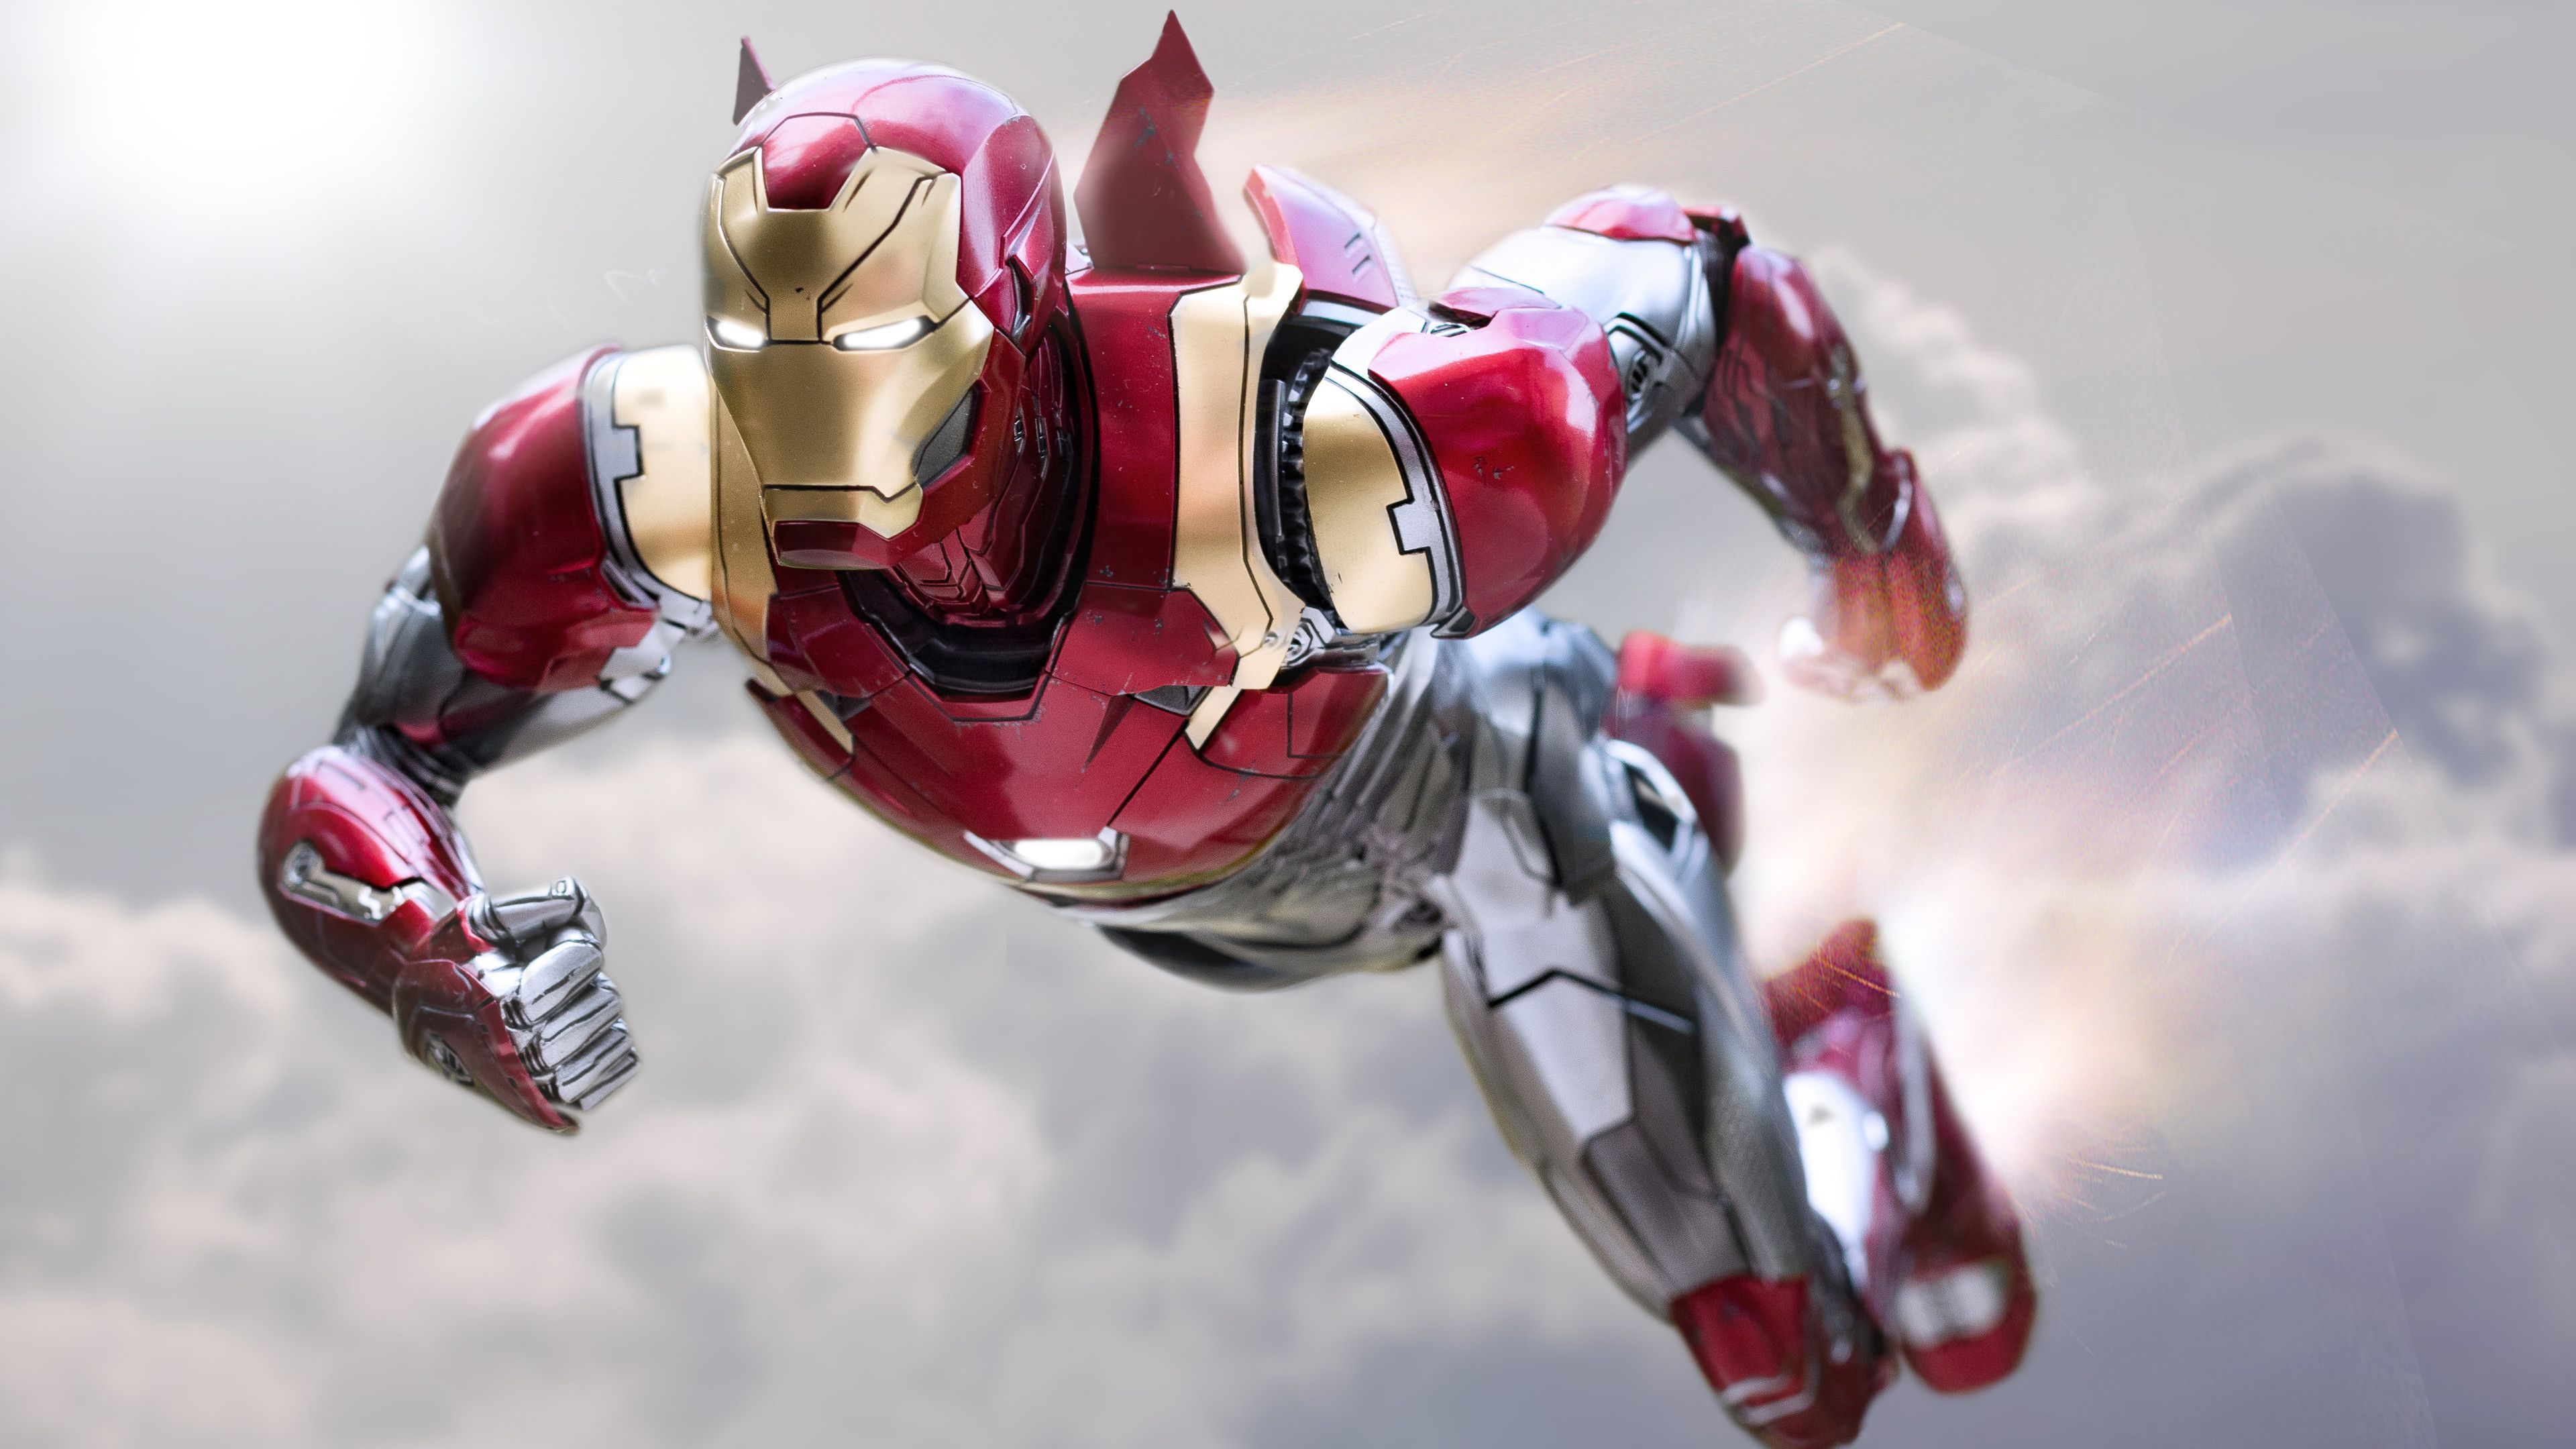 Iron Man 4k New Superheroes Wallpapers Iron Man Wallpapers Hd Wallpapers Digital Art Wallpapers Artwork W Iron Man Flying Iron Man Armor Iron Man Wallpaper